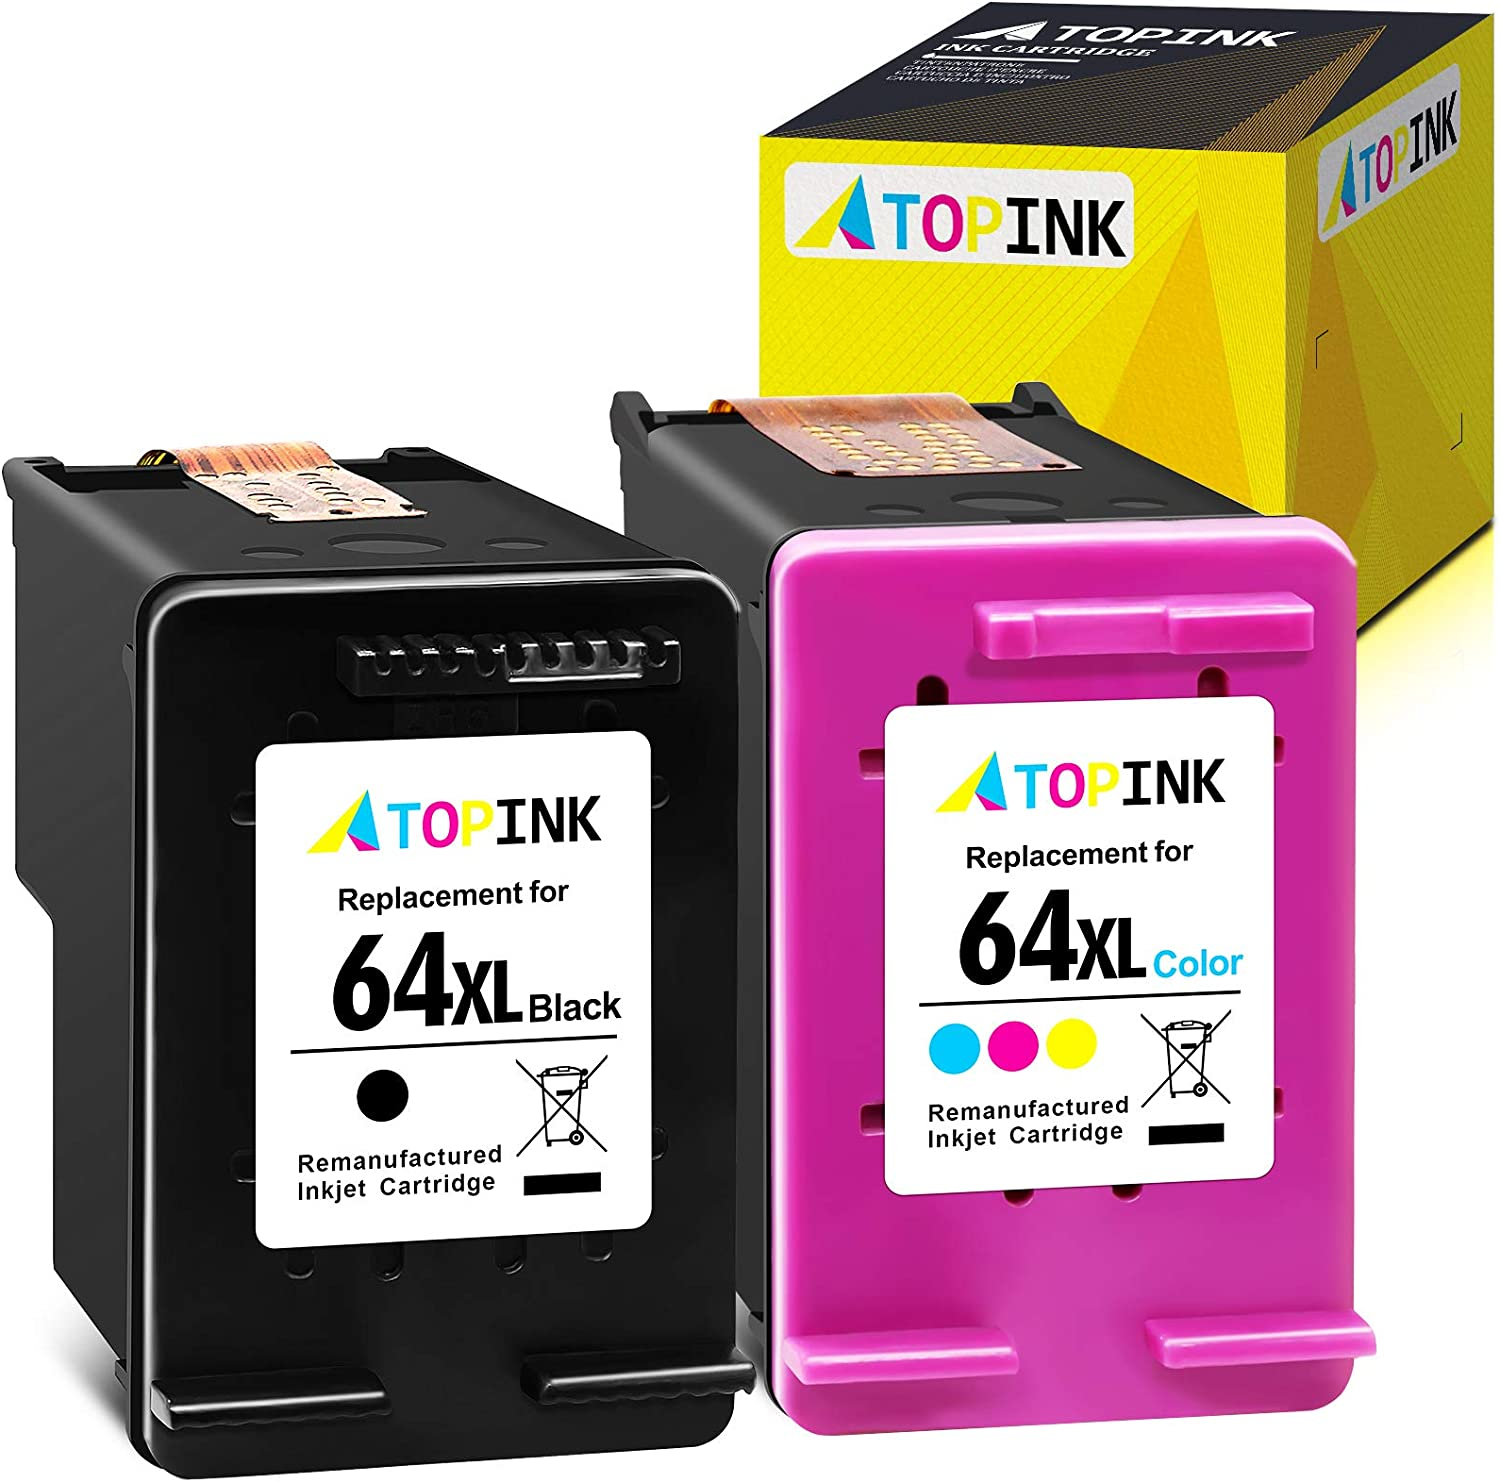 ATOPINK Remanufactured Ink Cartridge Replacement for HP 64XL 64 XL Fit in Envy Photo 7800 7158 7164 7855 6222 7155 6255 6252 7858 7120 7130 6220 6230 Tango X Smart All-in-One (Black, Tri-Color) 2-Pack